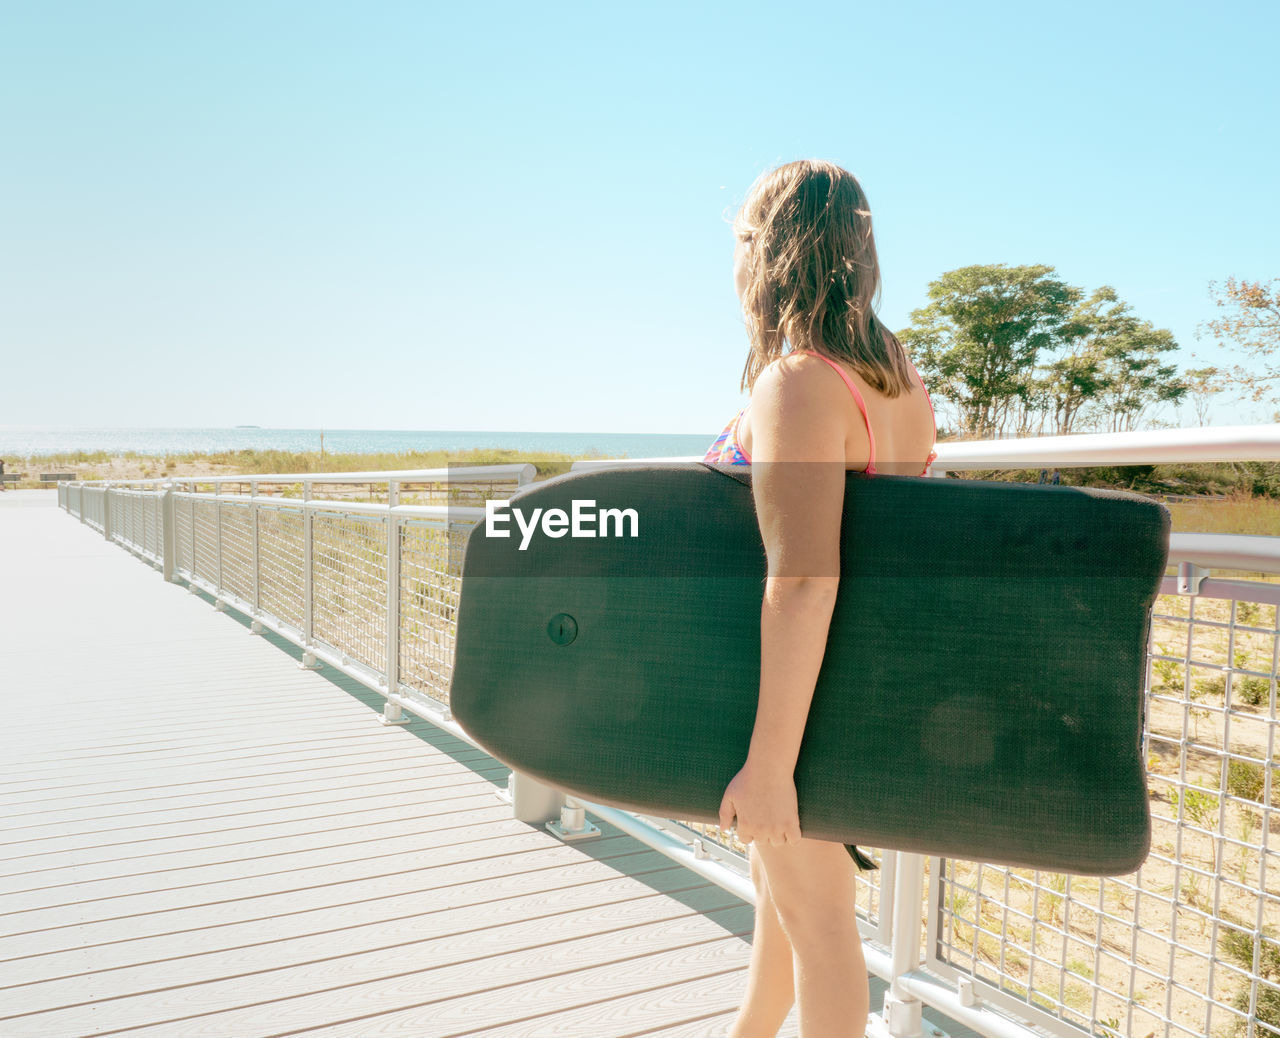 Side View Of Girl Holding Board While Standing On Footpath Against Clear Sky During Sunny Day